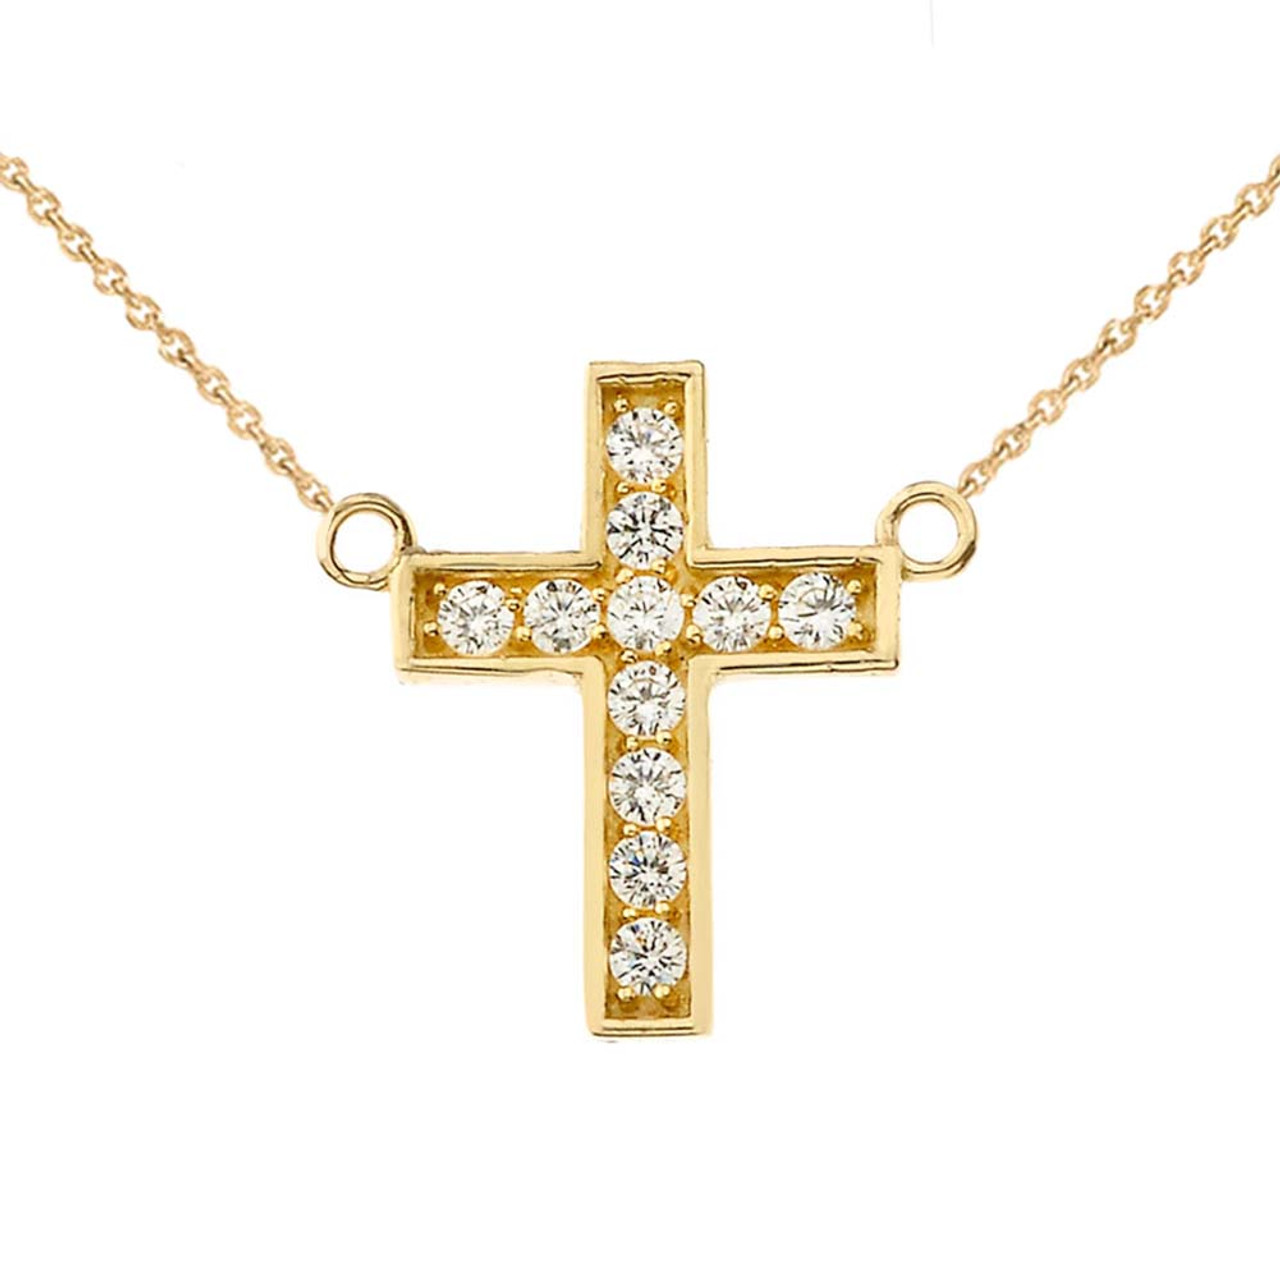 2df9741c031756 Yellow_Necklace_Chain_Img14396__66452.1537908987.jpg?c=2&imbypass=on